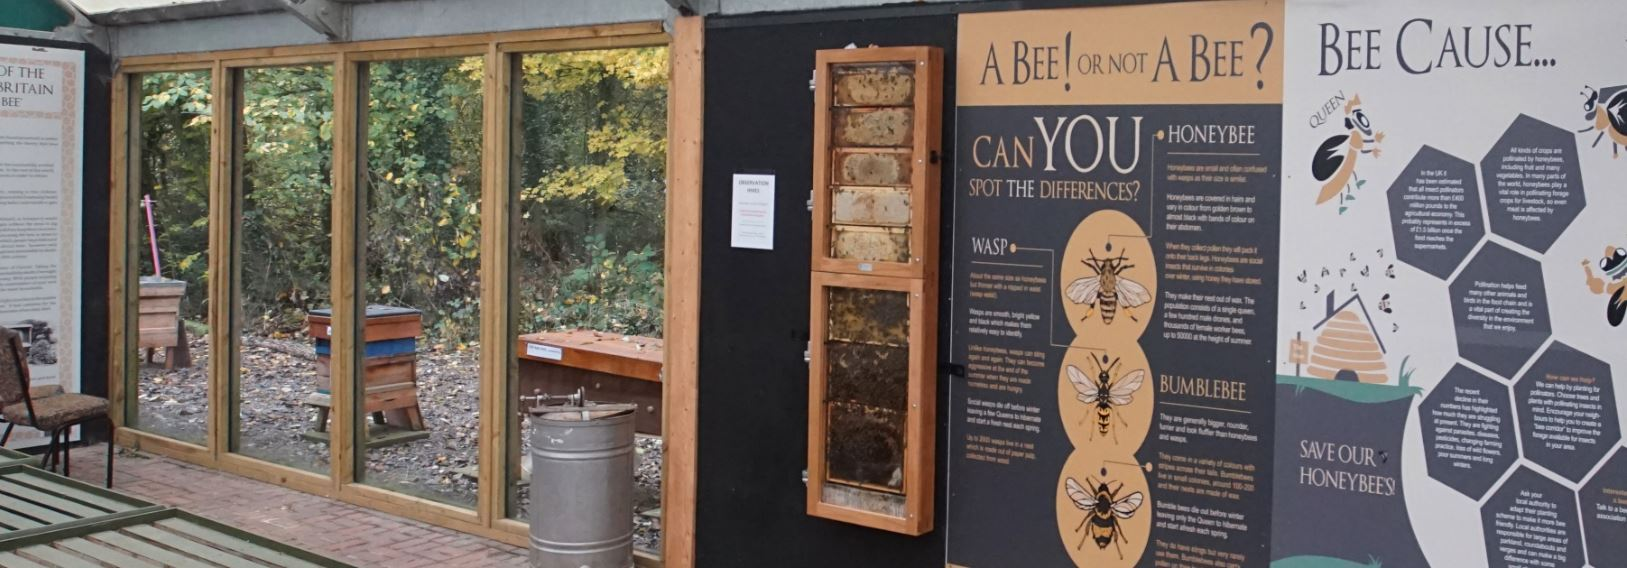 Bee & Heritage Centre